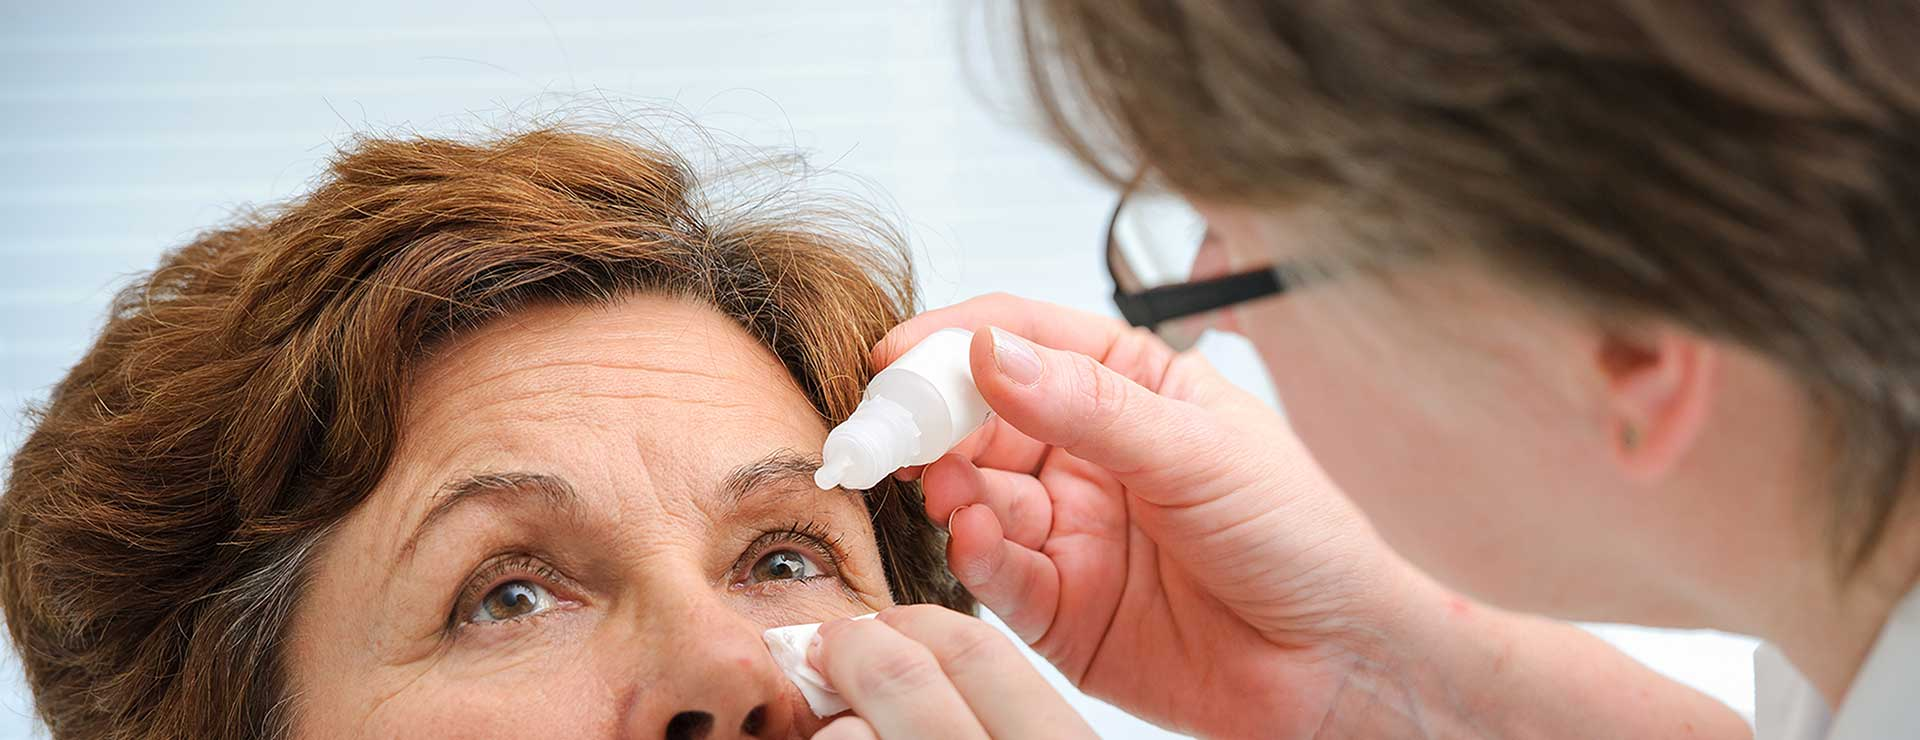 A senior woman receives eye drops from doctor